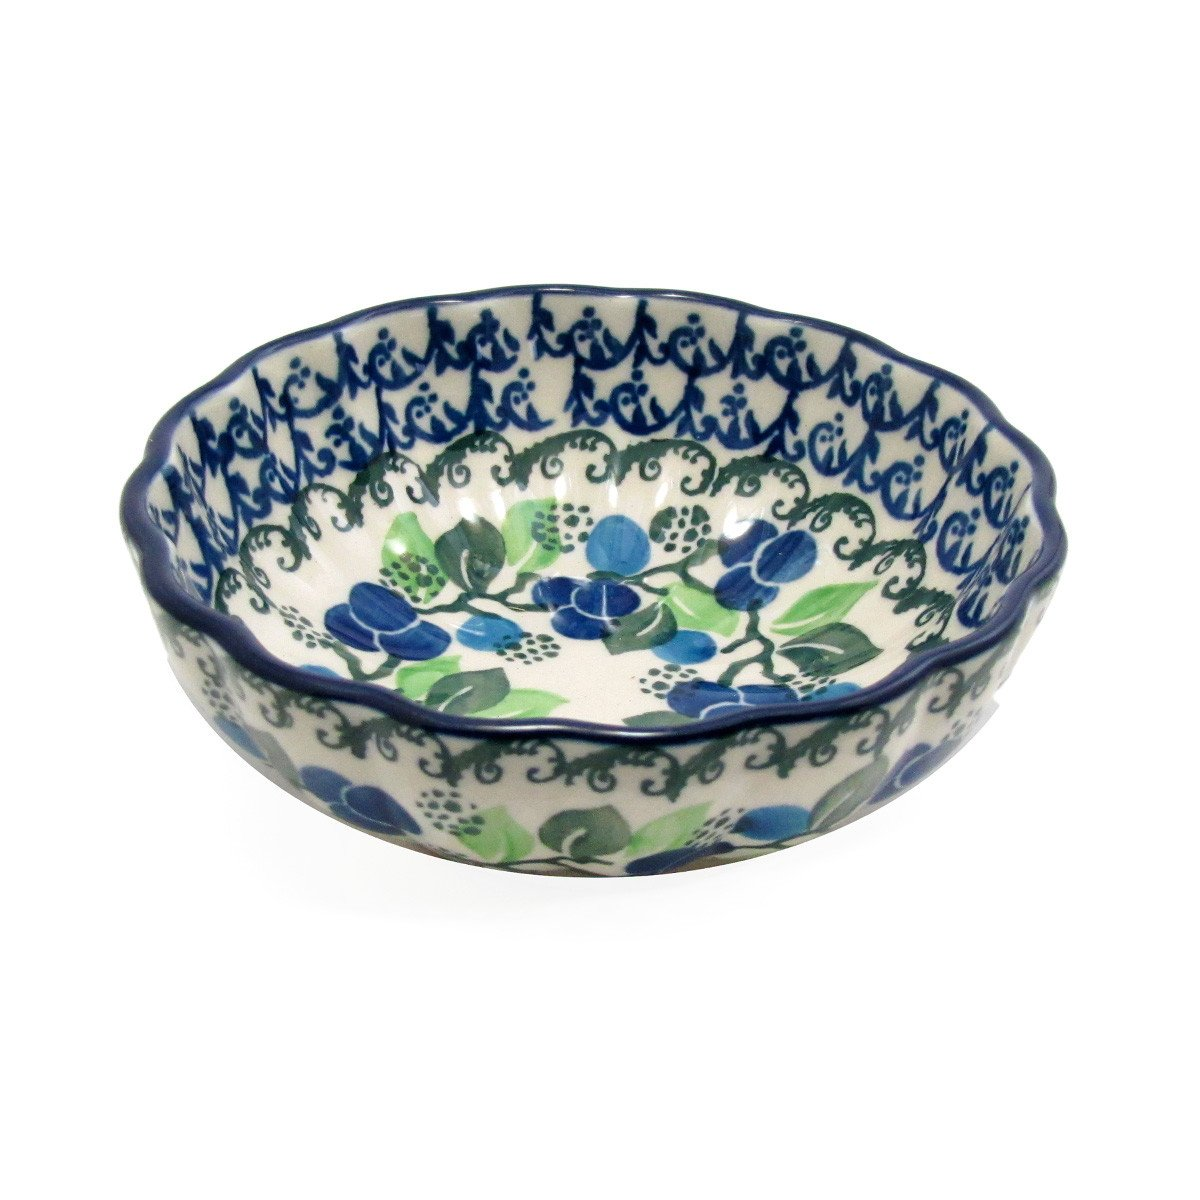 "Polish Pottery 4.5"" Fluted Dessert Dish Handmade Traditional Pattern 023-1416 by Polish Pottery Boleslawiec"